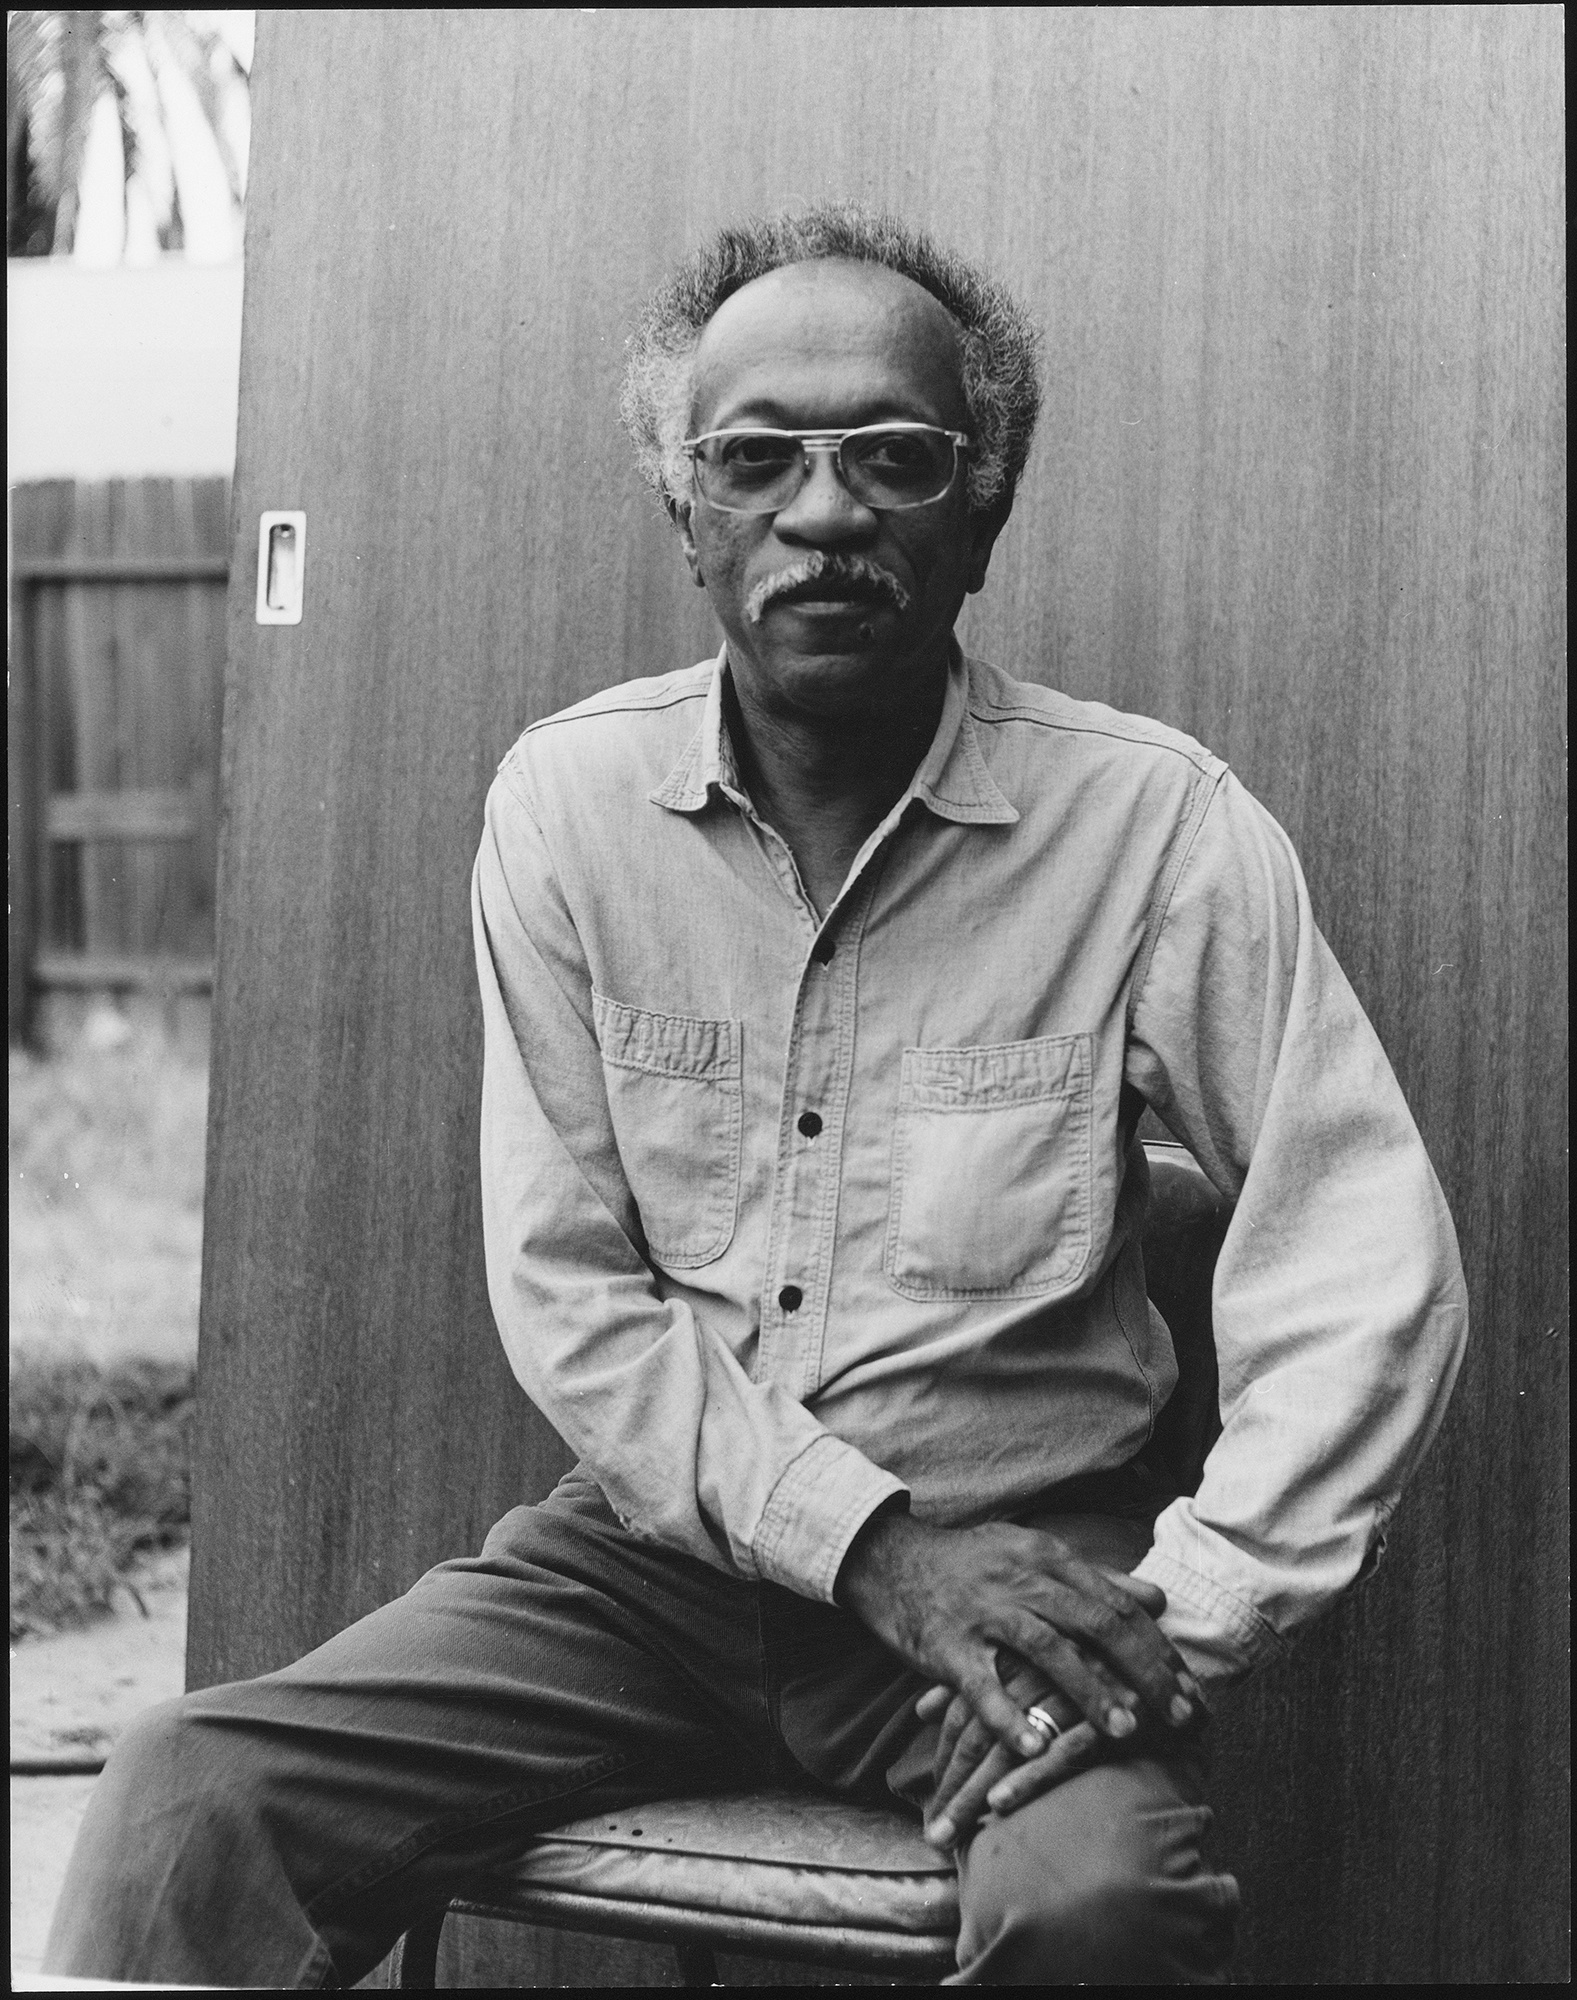 Charles White at home in Altadena, California, 1971.  Image courtesy of The Charles White Archives.